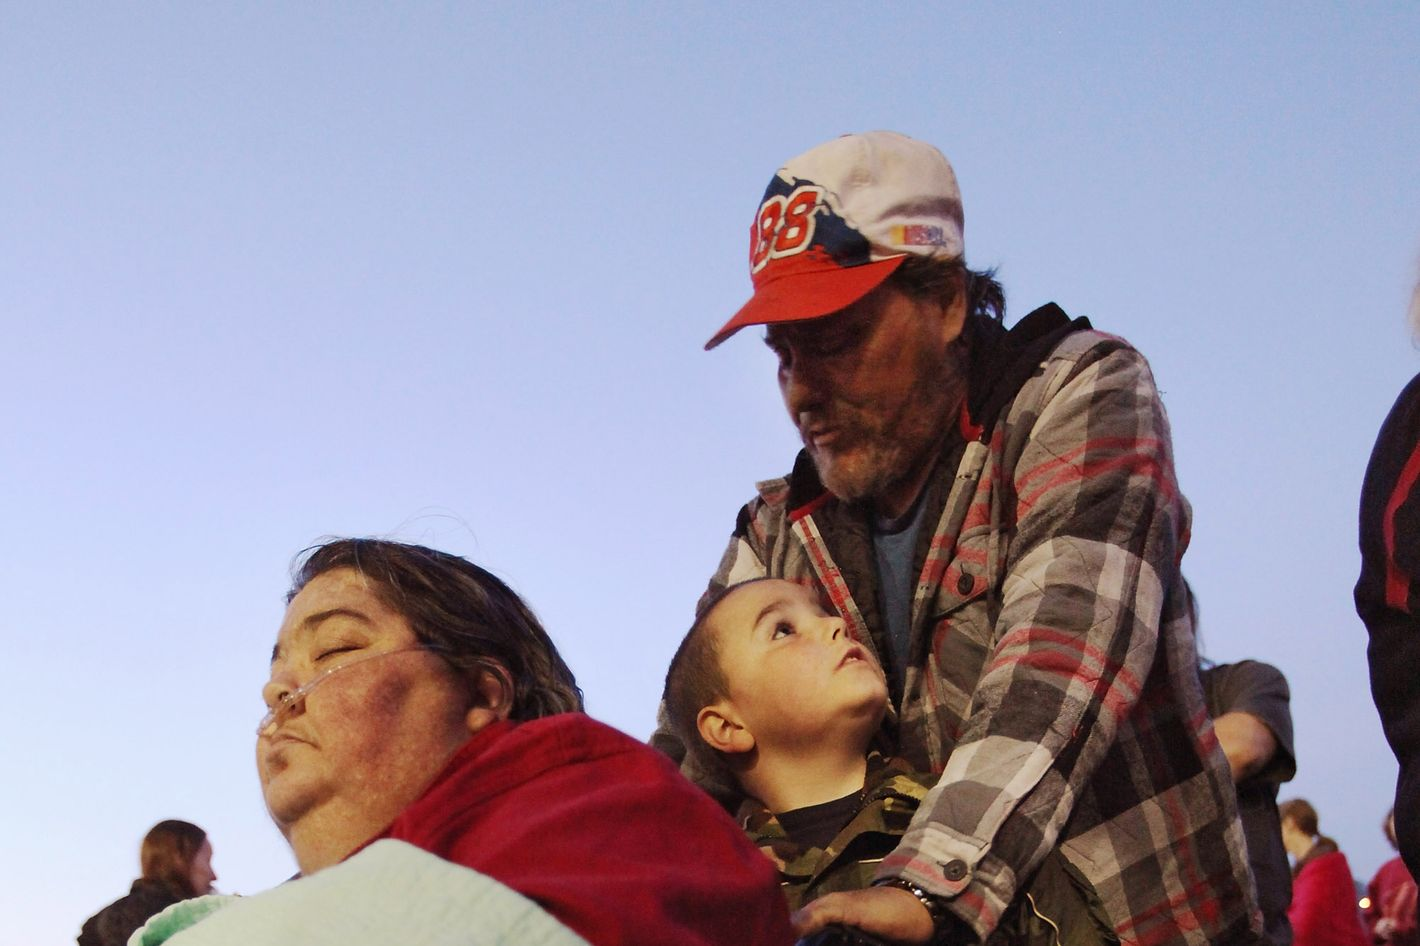 BRISTOL, TN - APRIL 15: Uninsured family Betty, James Jr. and James Ramsey wait at dawn to attend the Remote Area Medical (RAM) free clinic at the Bristol Motor Speedway, located in the mountains of Appalachia, on April 15, 2012 in Bristol Tennessee. More than one thousand uninsured and underinsured people received free medical, dental, vision and pulmonary treatments provided by volunteer doctors, dentists, optometrists, nurses and support staff during the three day clinic in the foothills of the Appalachian Mountains, one of the poorest regions in the country. The U.S. Supreme Court recently heard arguments over the constitutionality of President Obama's sweeping health care overhaul.  (Photo by Mario Tama/Getty Images)